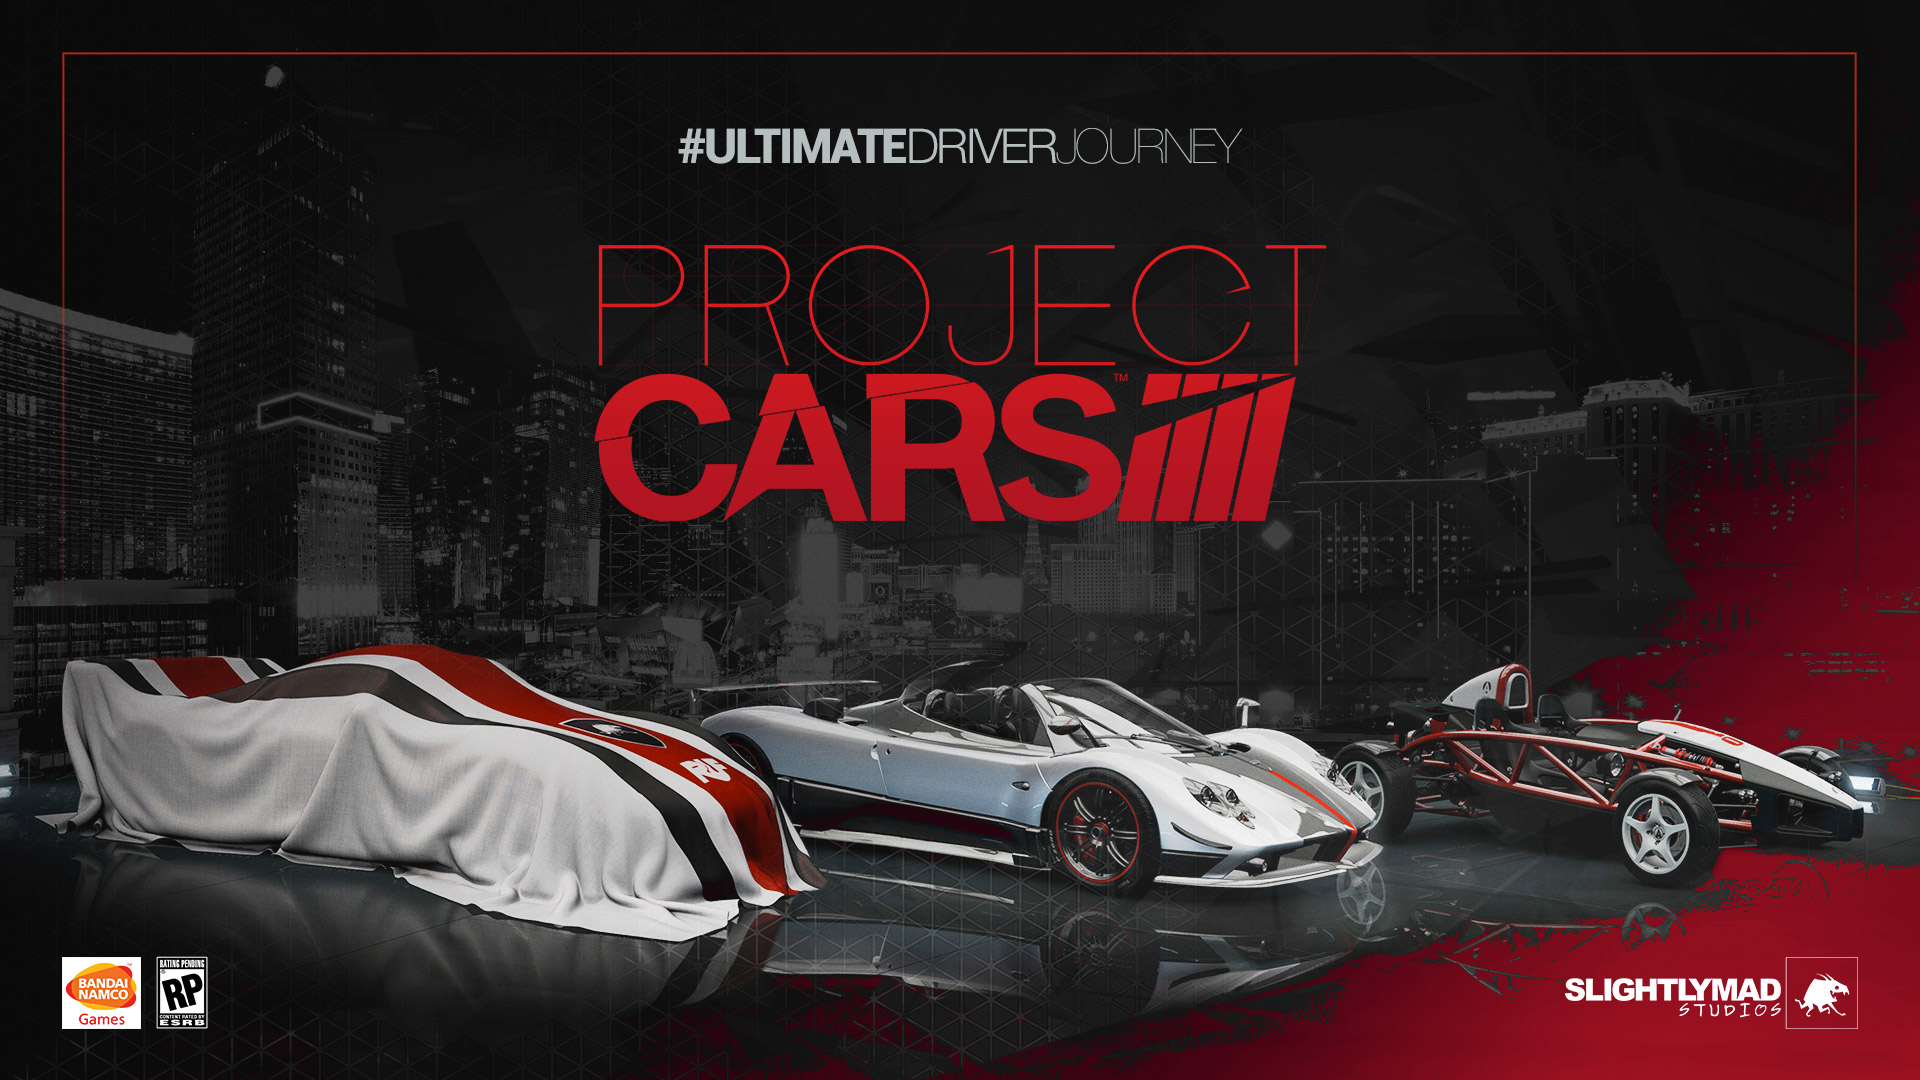 Project Cars Wallpaper in 1920x1080